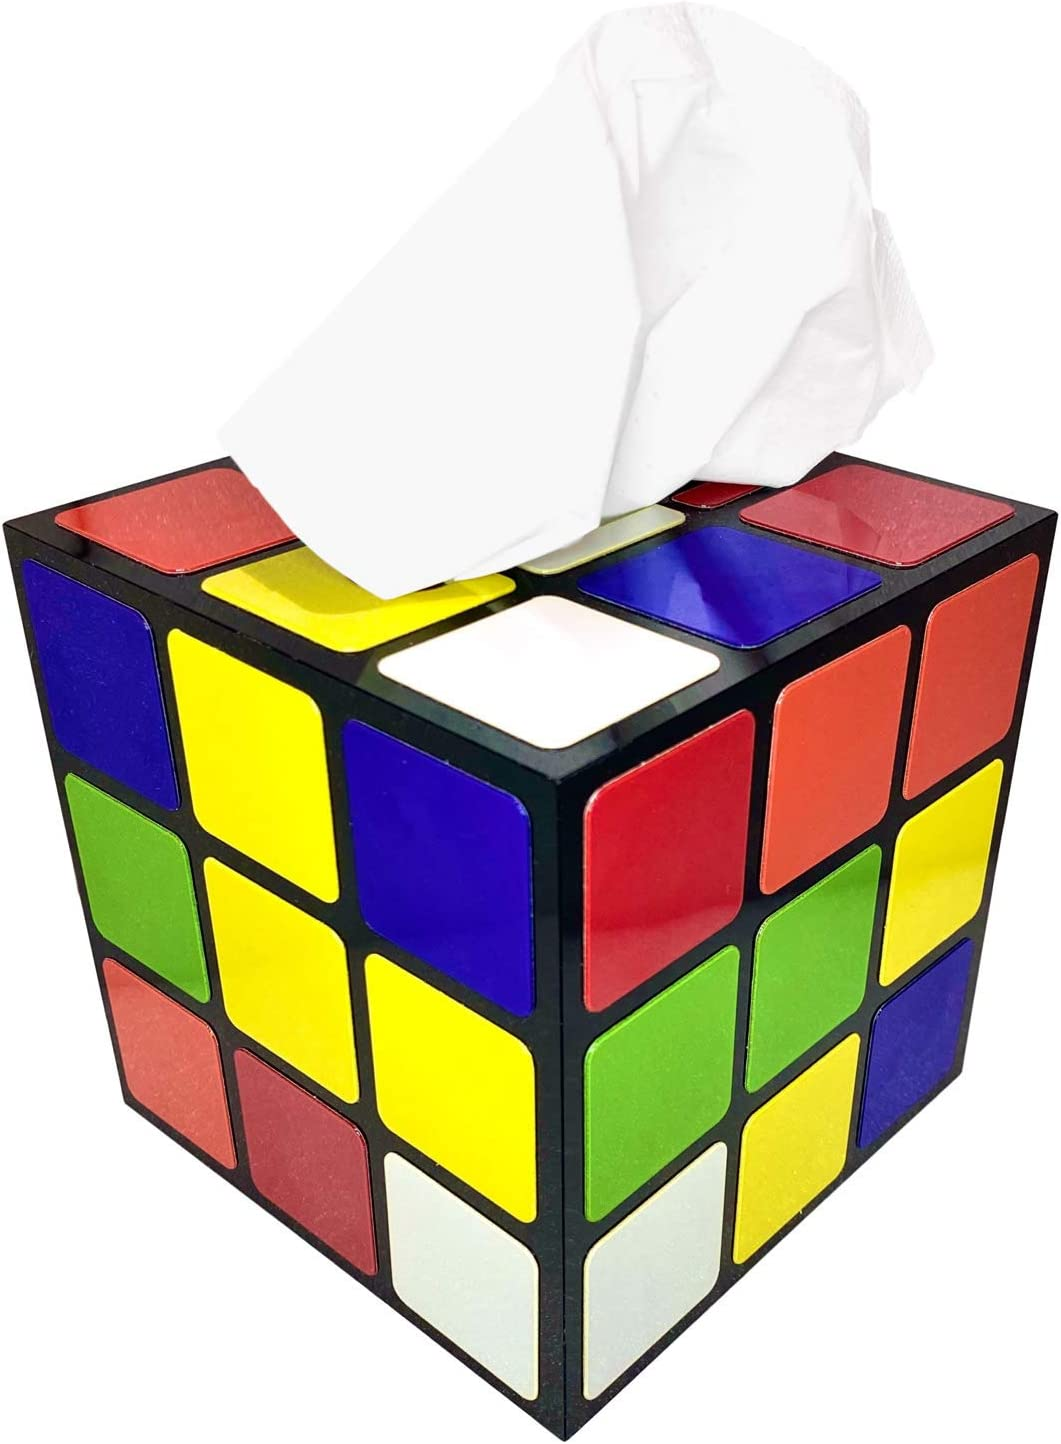 Dacey Rubix Cube Tissue Box Cover | Big Bang Theory Props & Decor | Easy Use with Magnetic Bottom Lid to Keep Tissues Secure